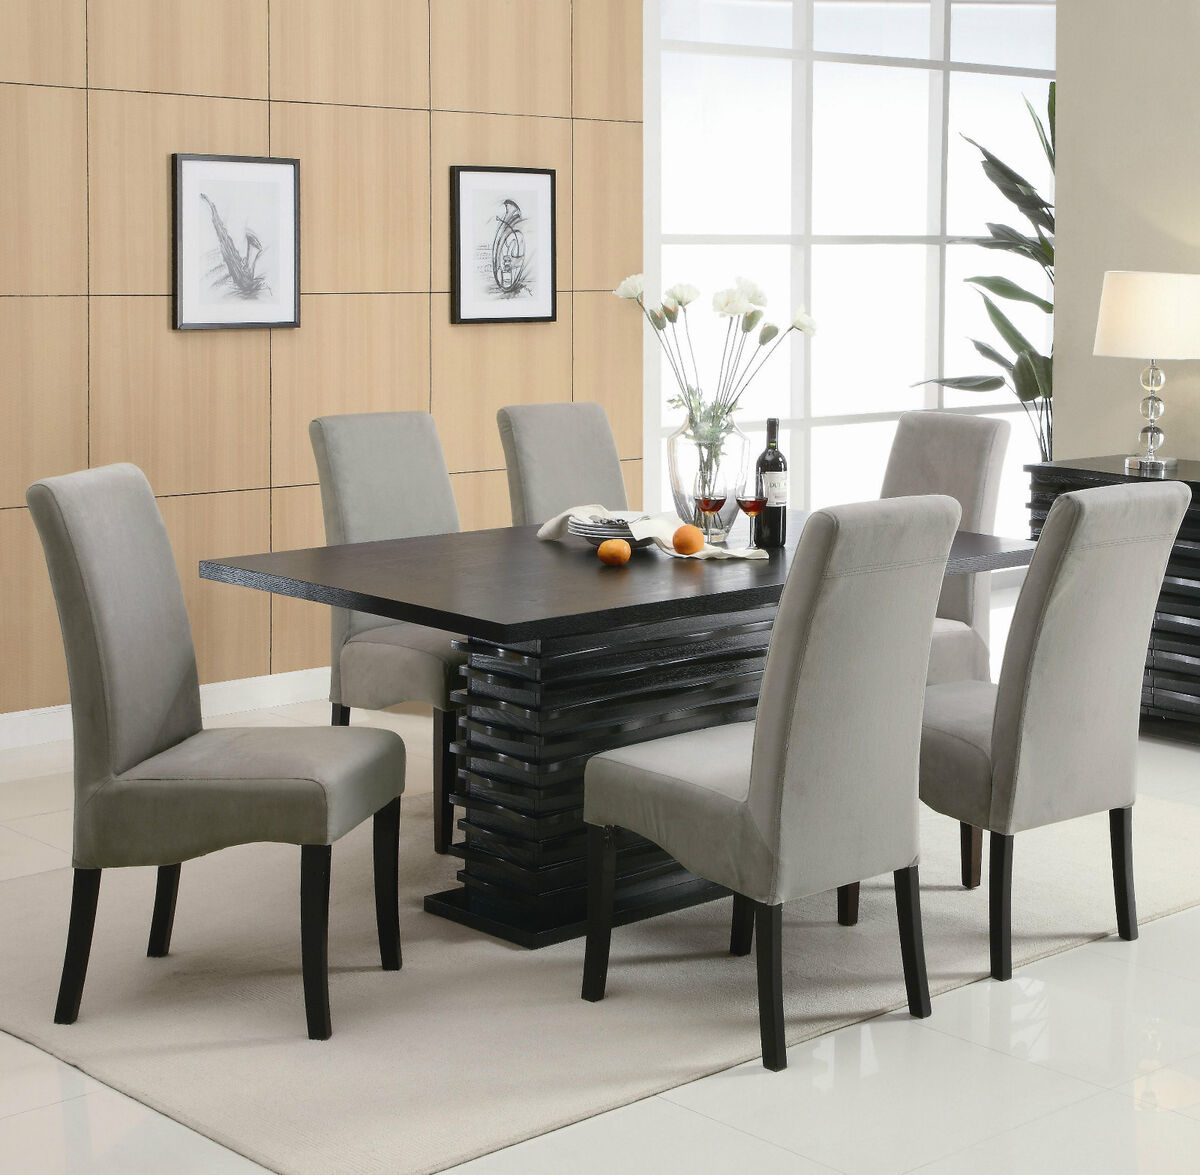 dining table furniture contemporary dining table chairs